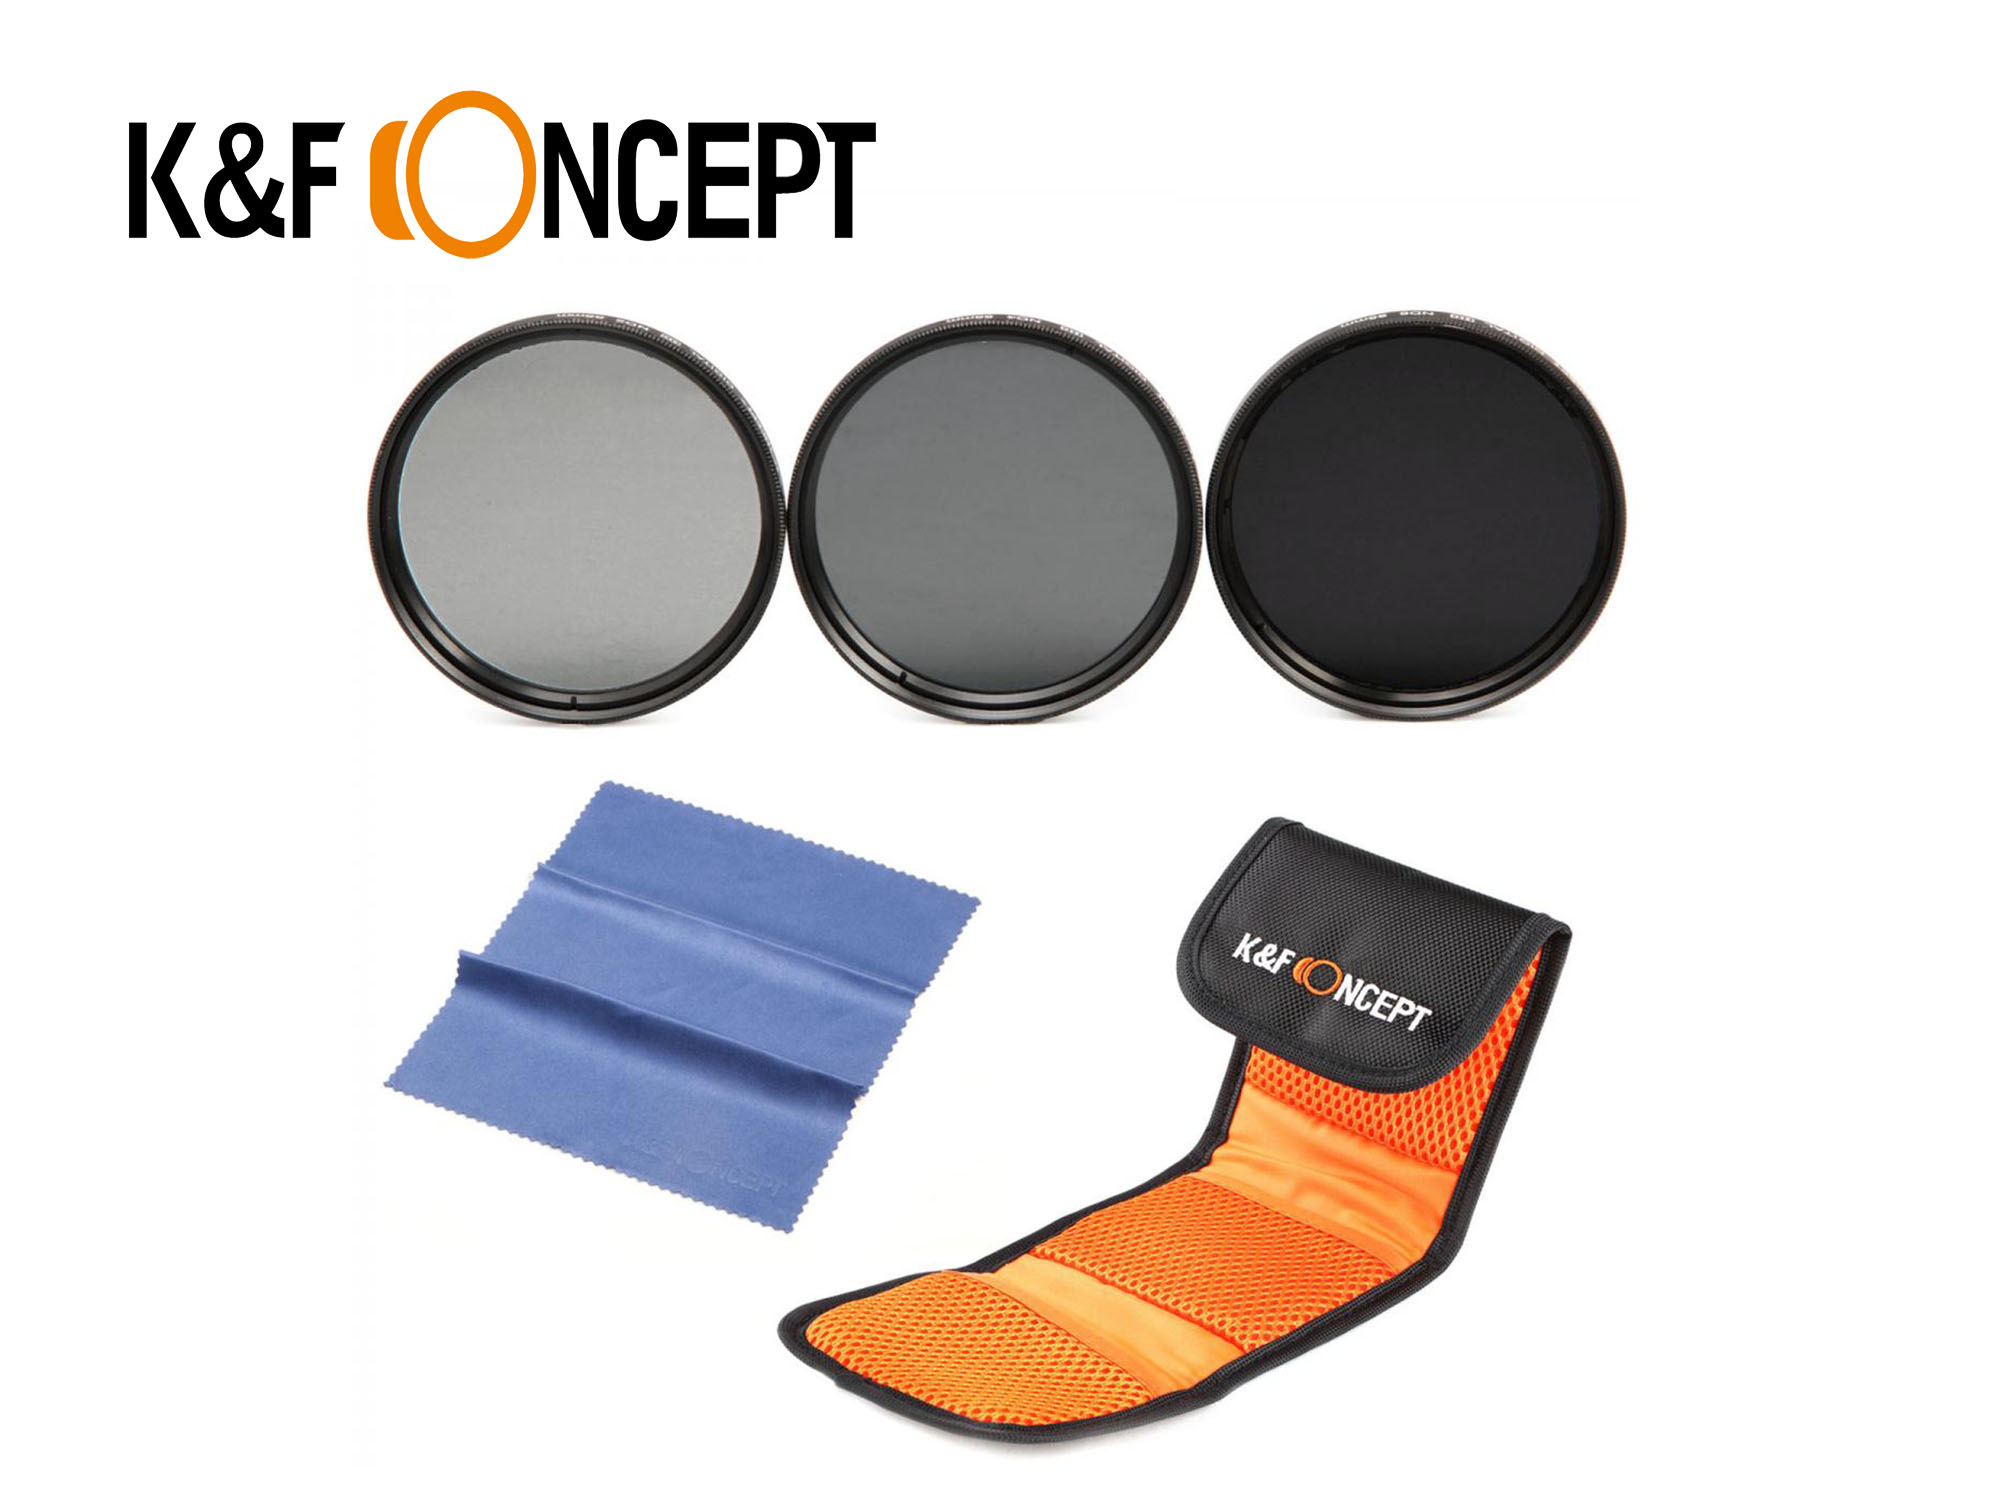 KNDSet55 - 55mm Filter Set - K&F Concept